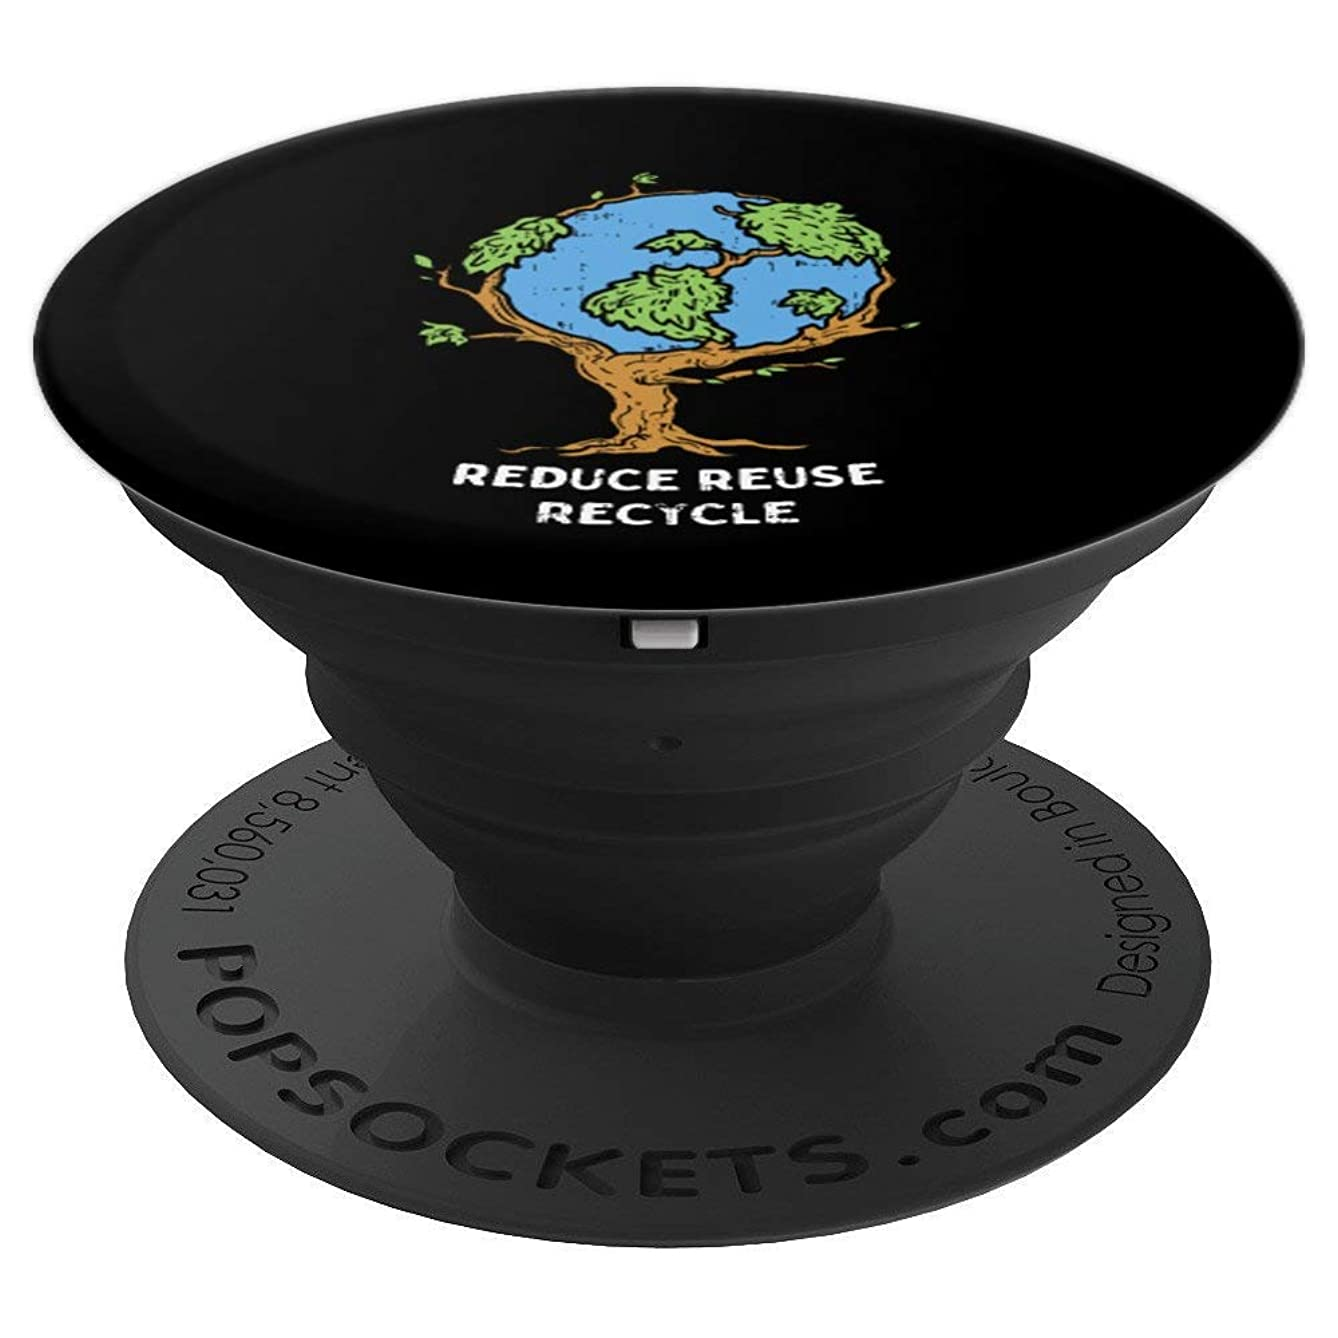 Earth Day Reduce Reuse Recycle World Environment Tree Gift - PopSockets Grip and Stand for Phones and Tablets